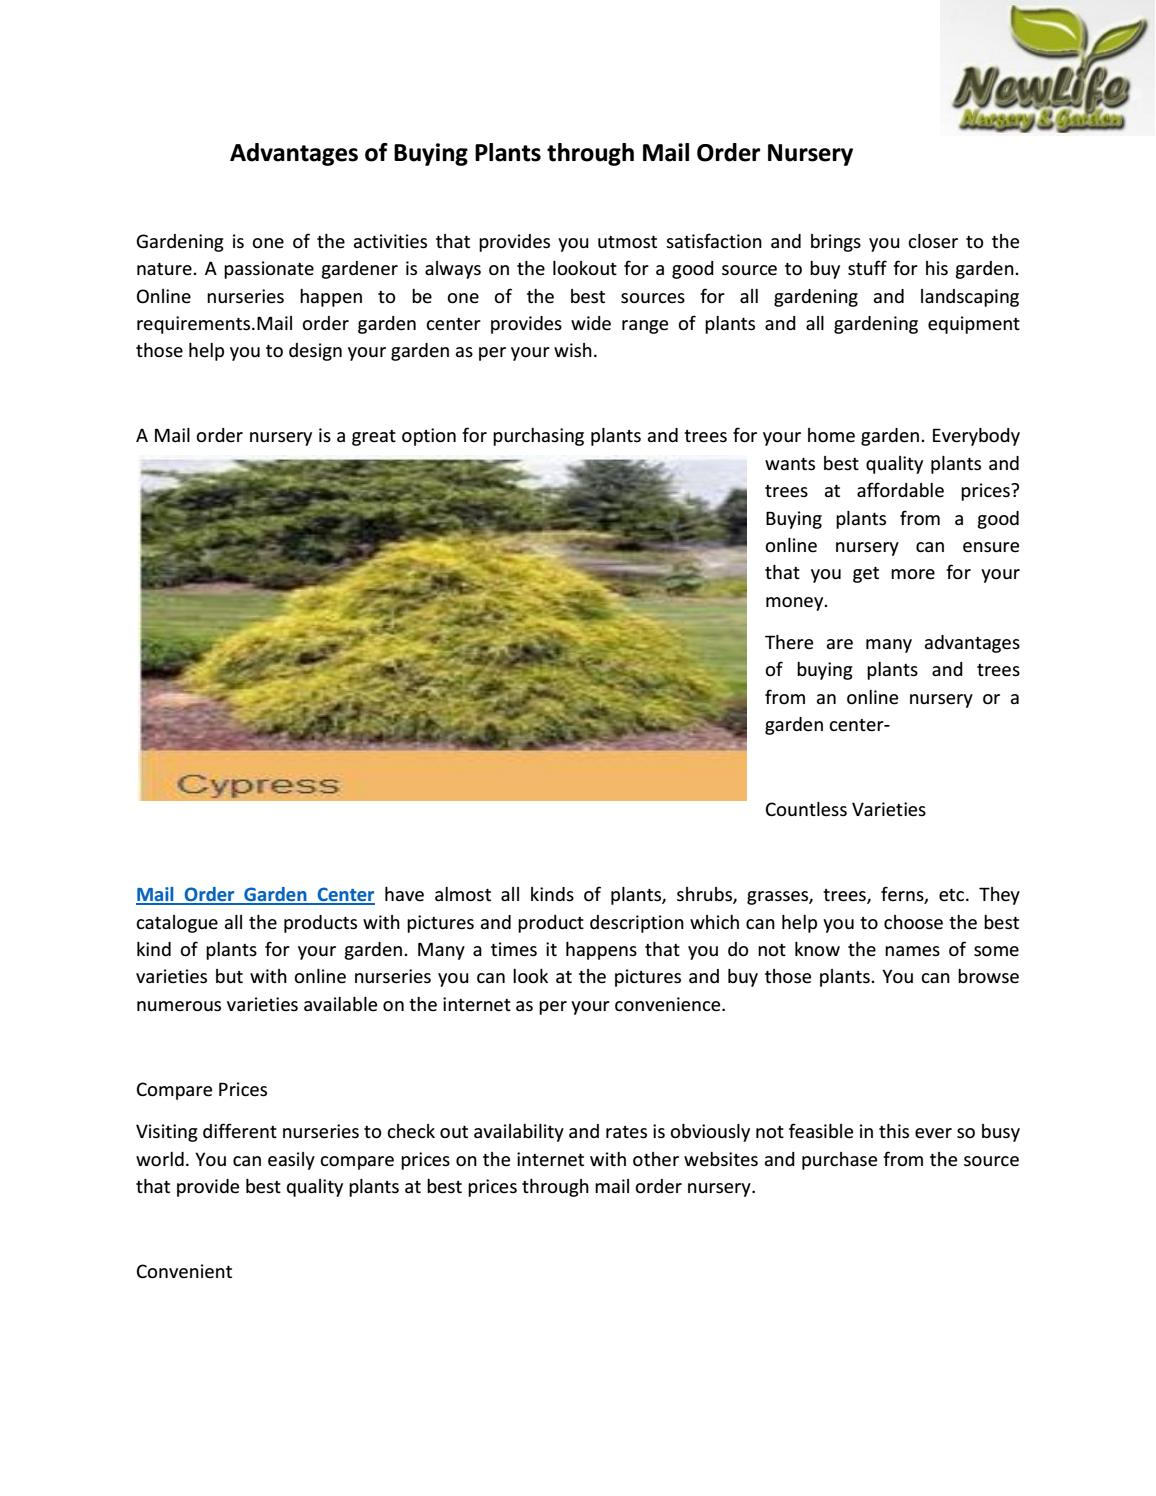 Advantages Of Ing Plants Through Mail Order Nursery By Newlifenursery1 Issuu